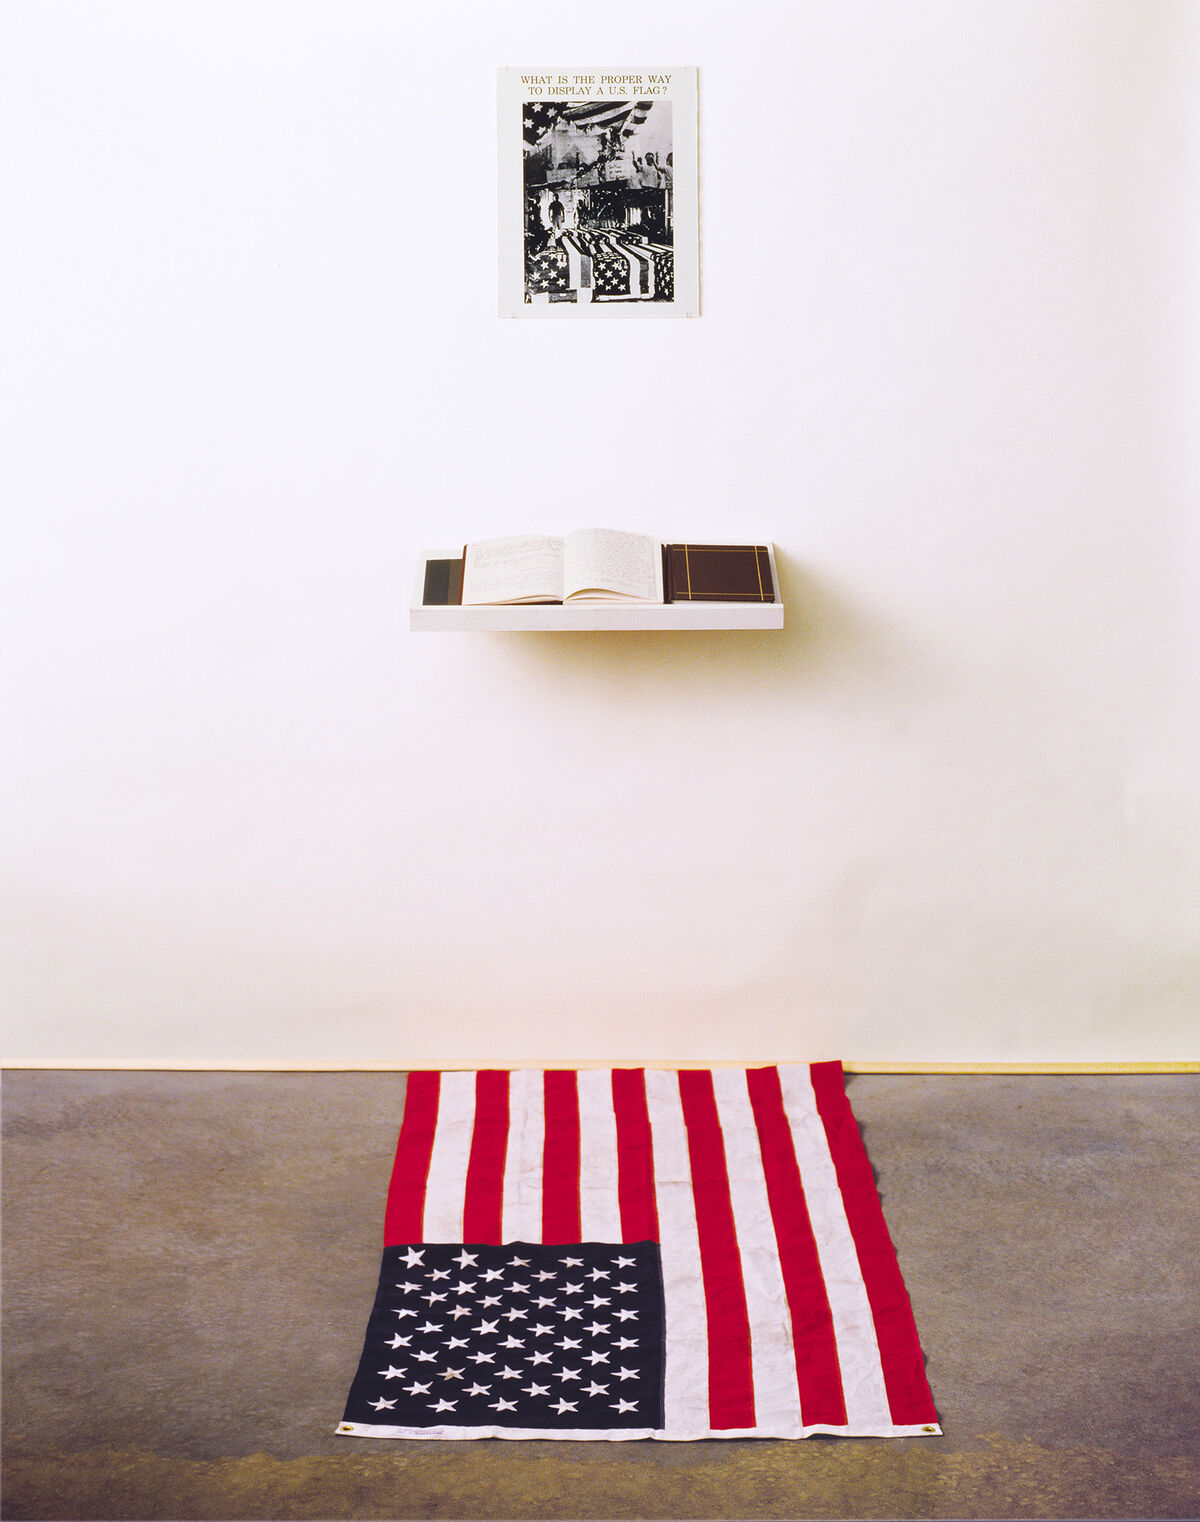 Installation view of Dread Scott, What is the Proper Way to Display a U.S. Flag?, 1988. Courtesy of the artist.